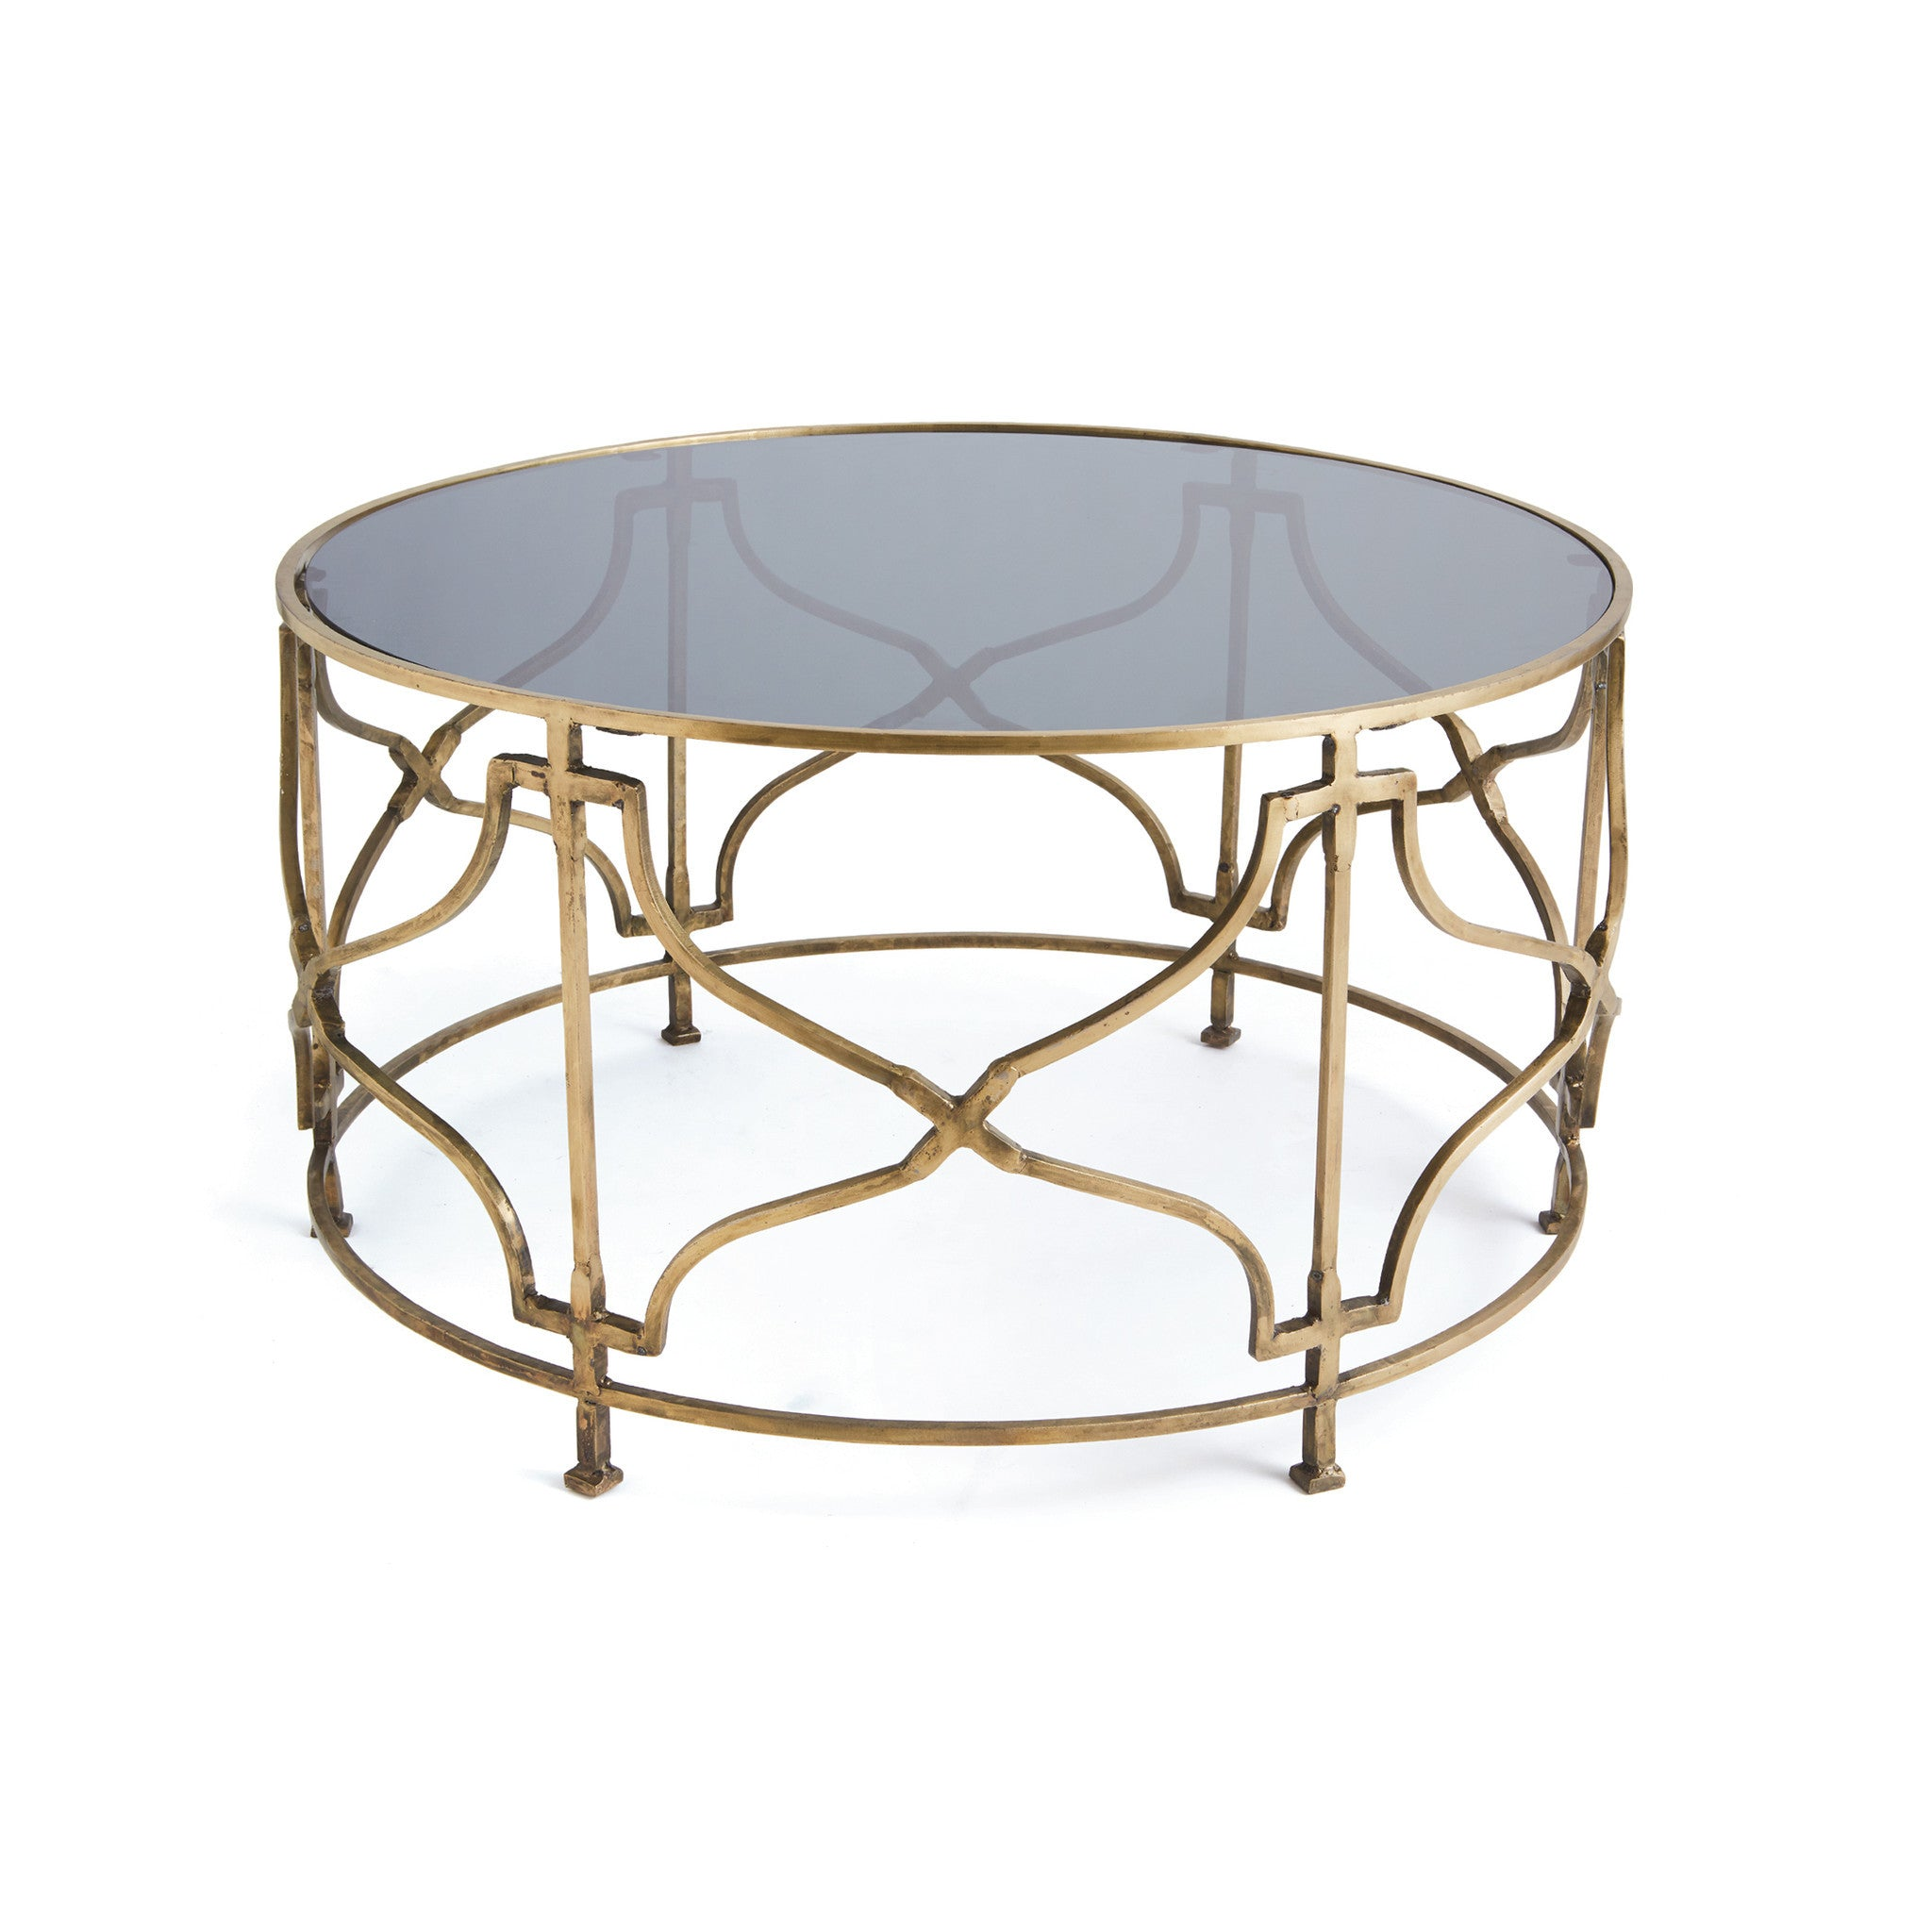 Bradley Coffee Table With Round Glass Top On Antiqued